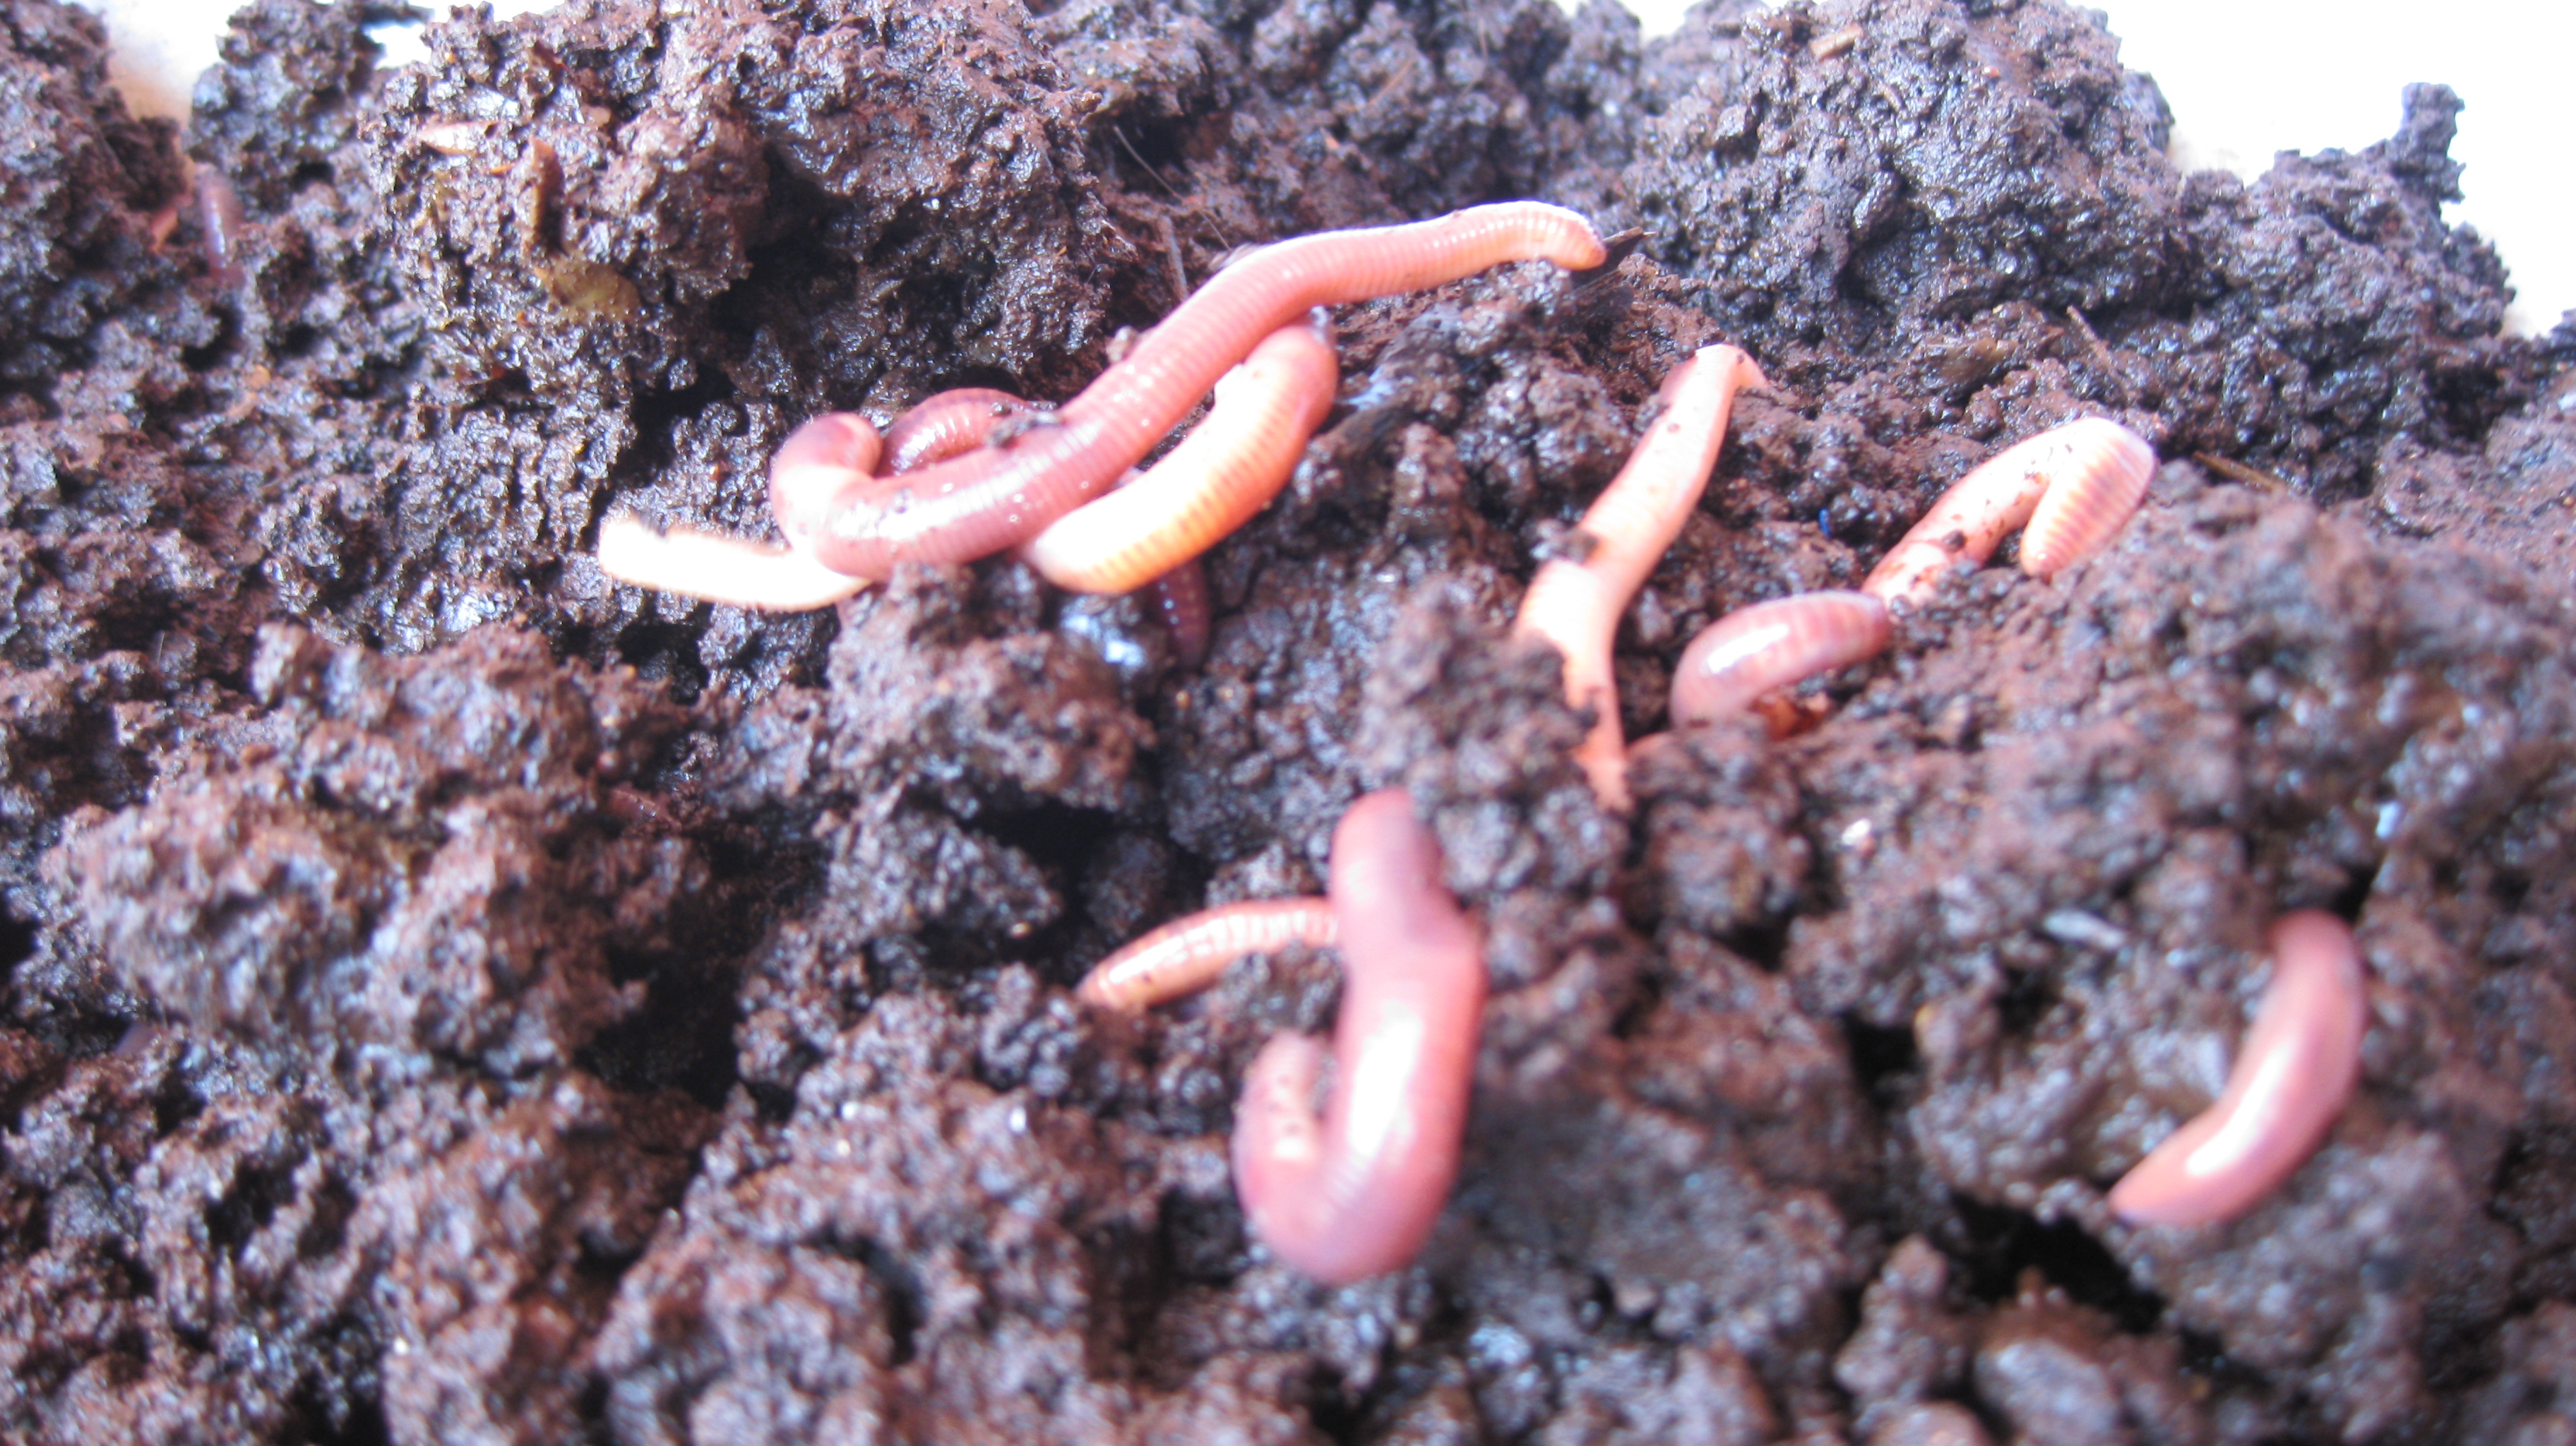 Phylum Annelida – Life as a biology student